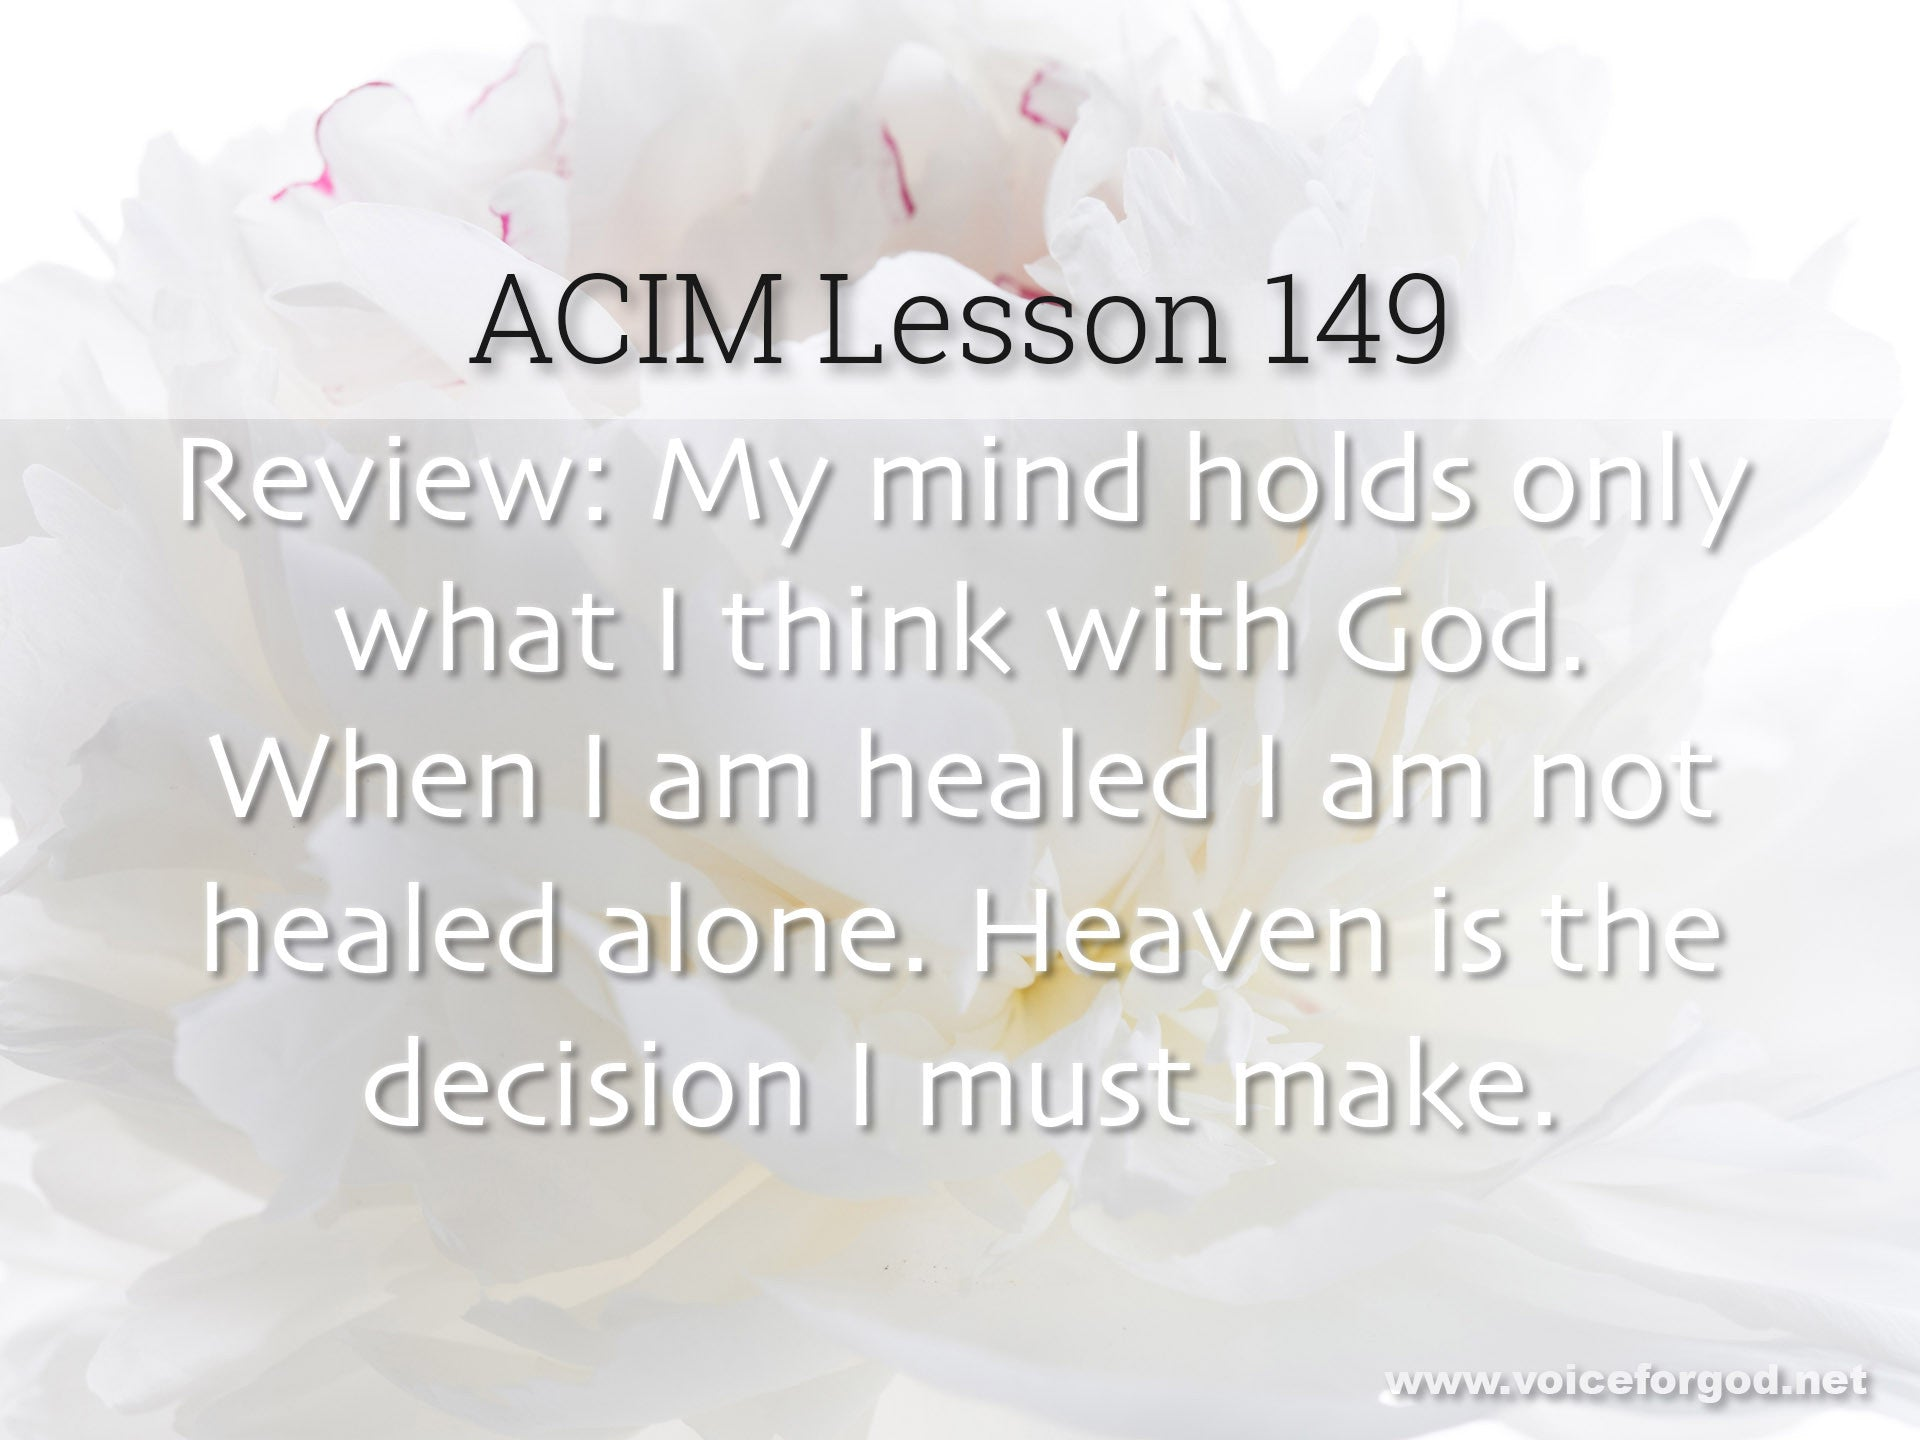 ACIM Lesson 149 - A Course in Miracles Workbook Lesson 149